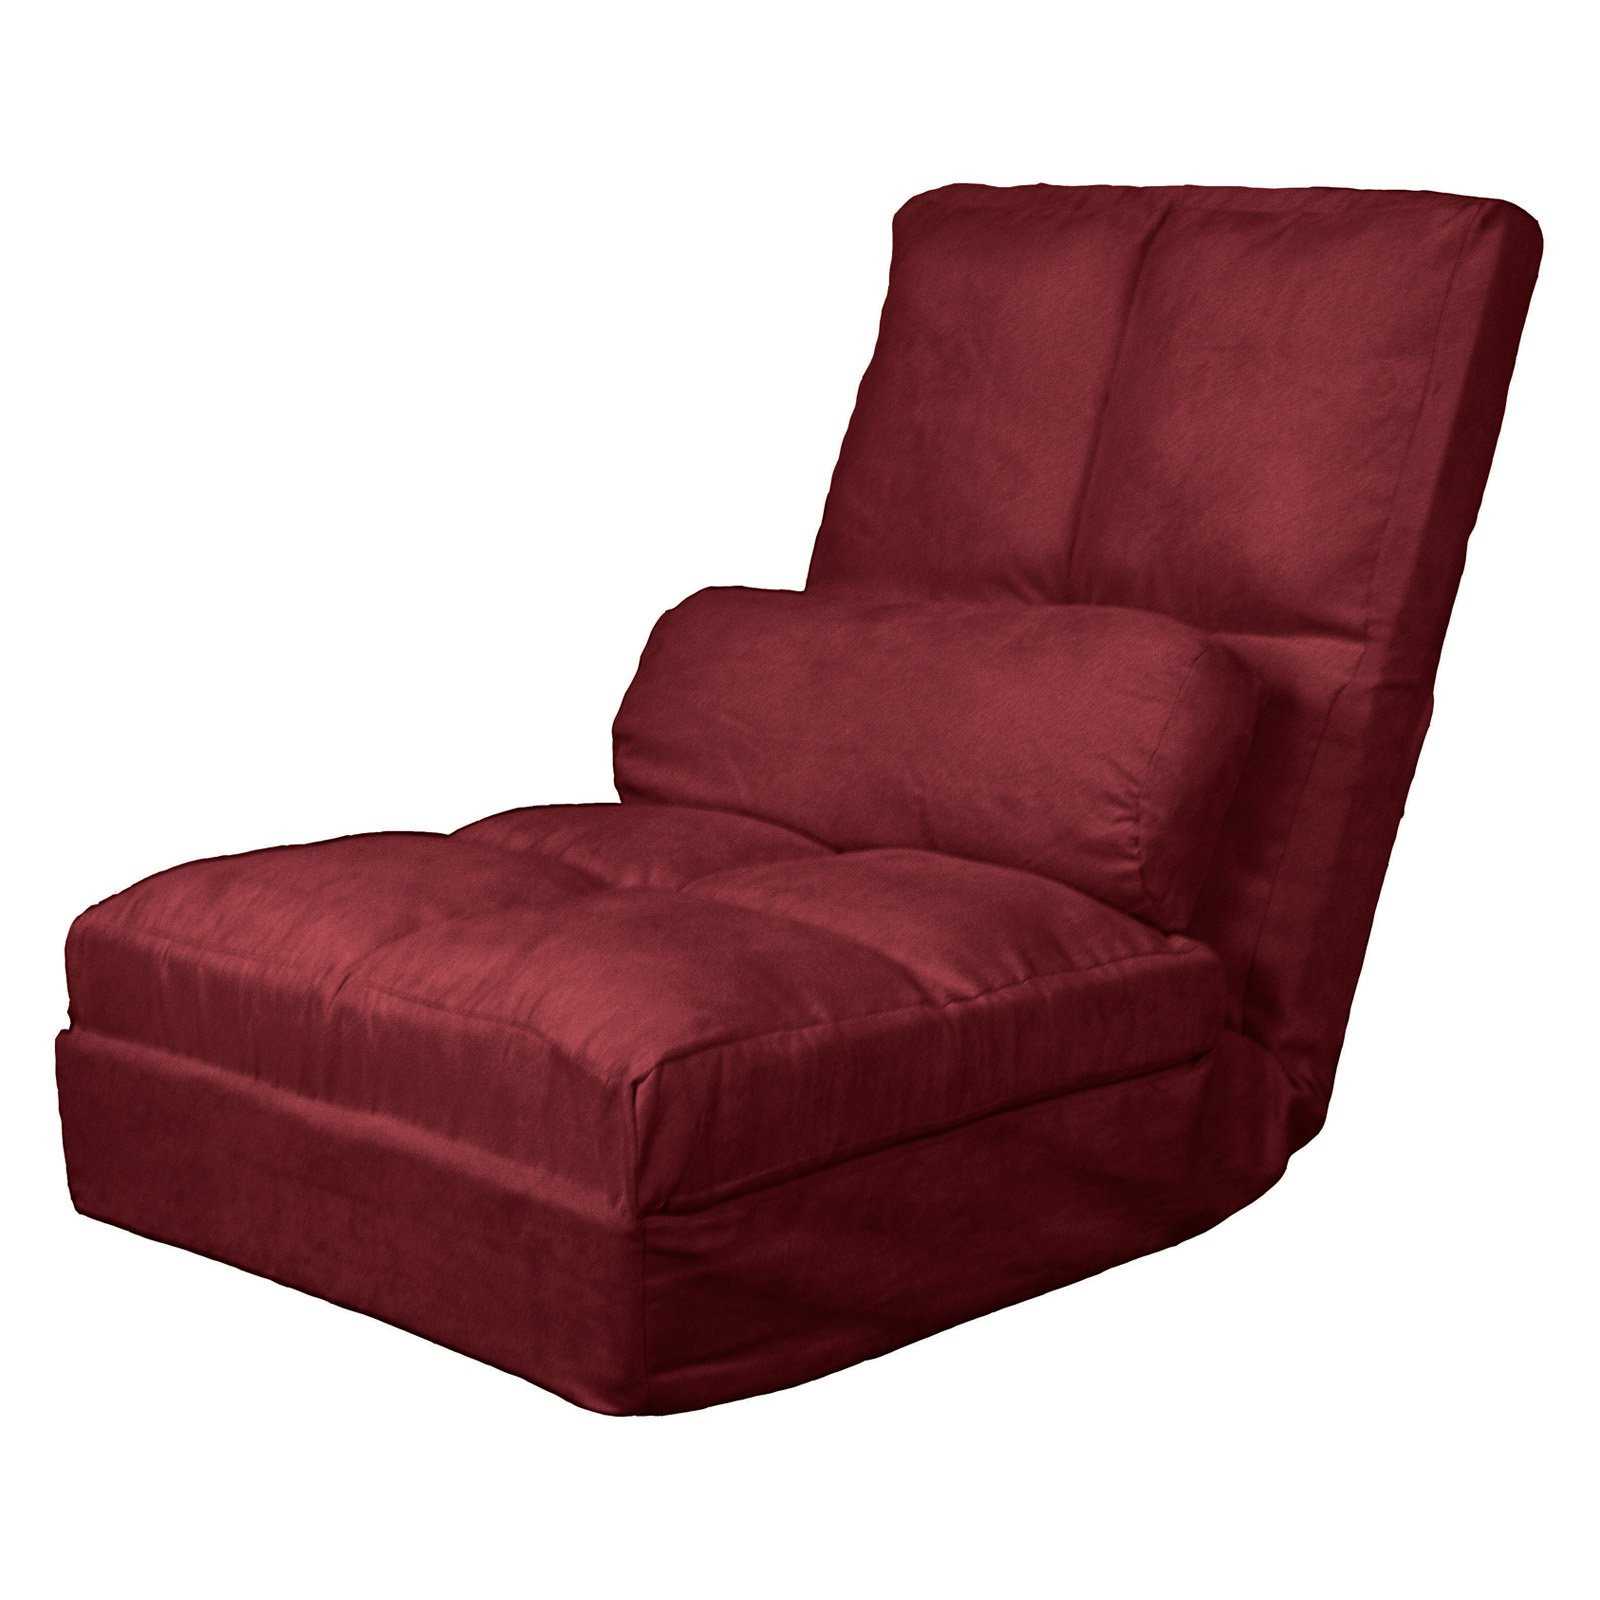 Epic Home Furnishings Cosmo Click Clack Convertible Sleeper Chair